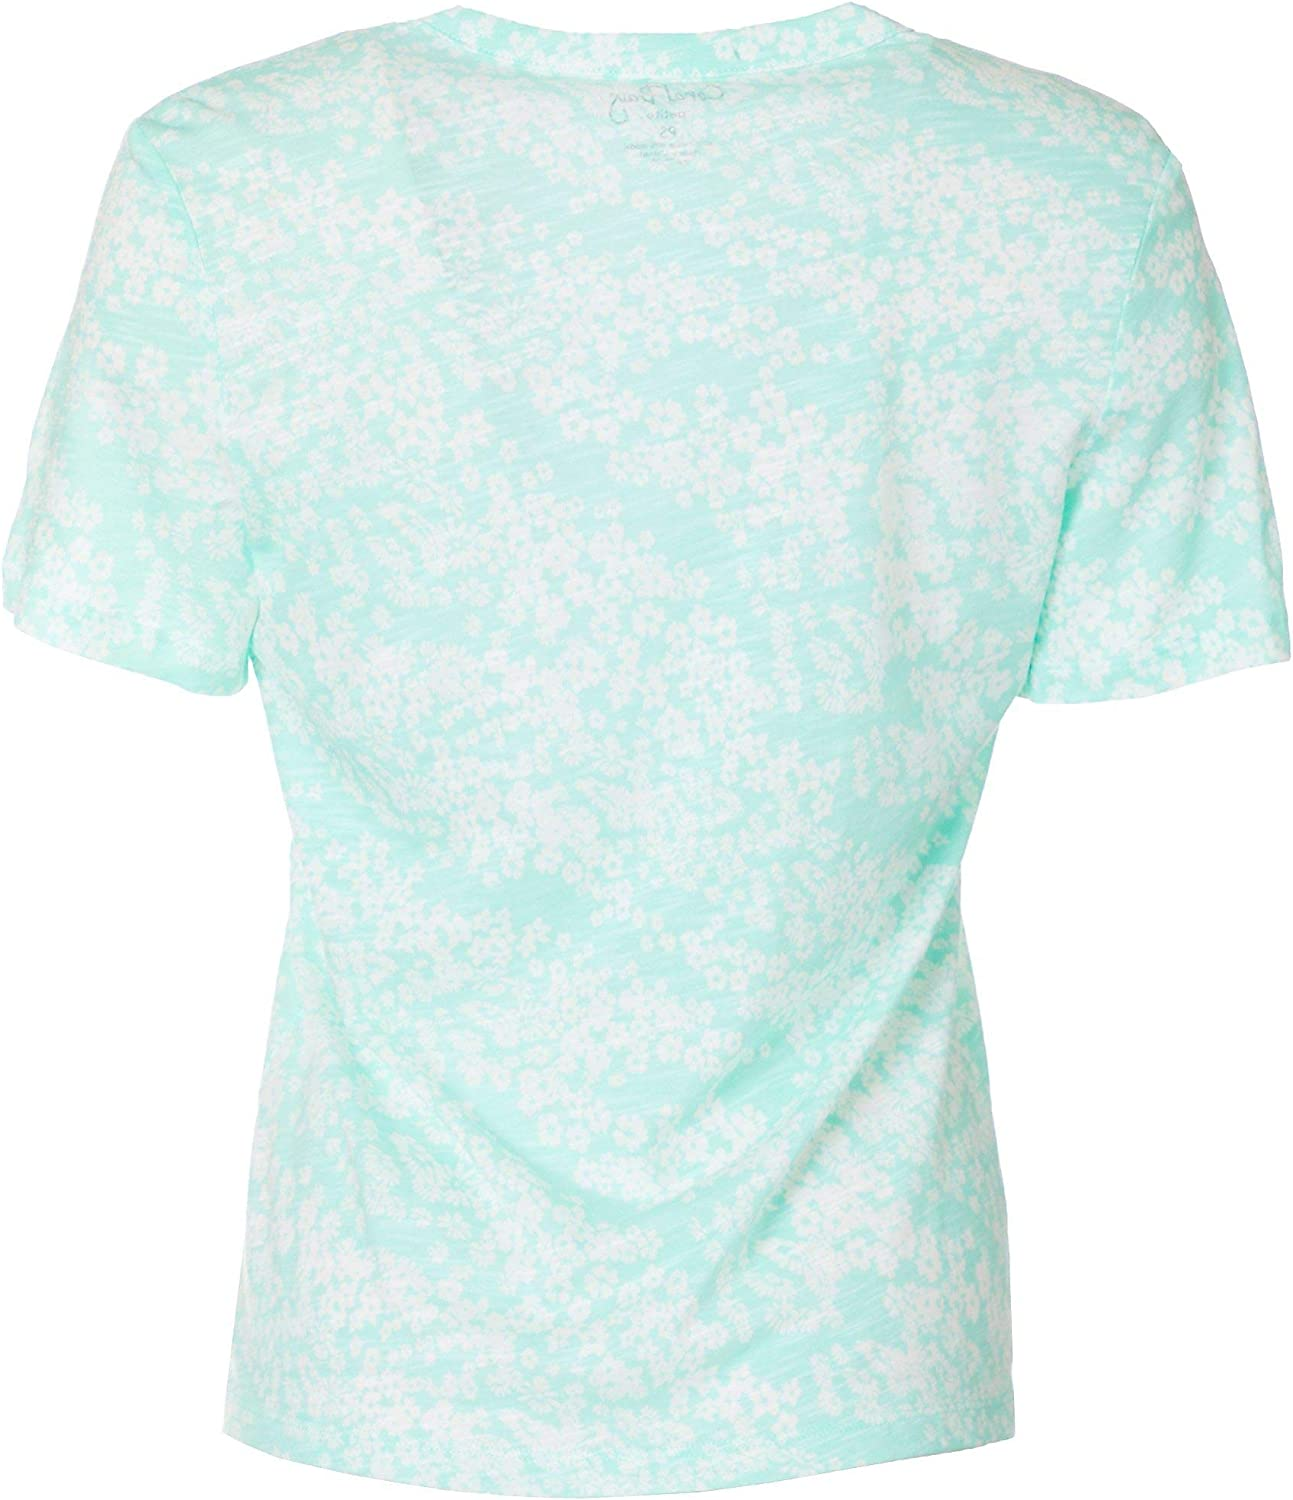 Coral Bay Petite Floral Pleated Short Sleeve Top